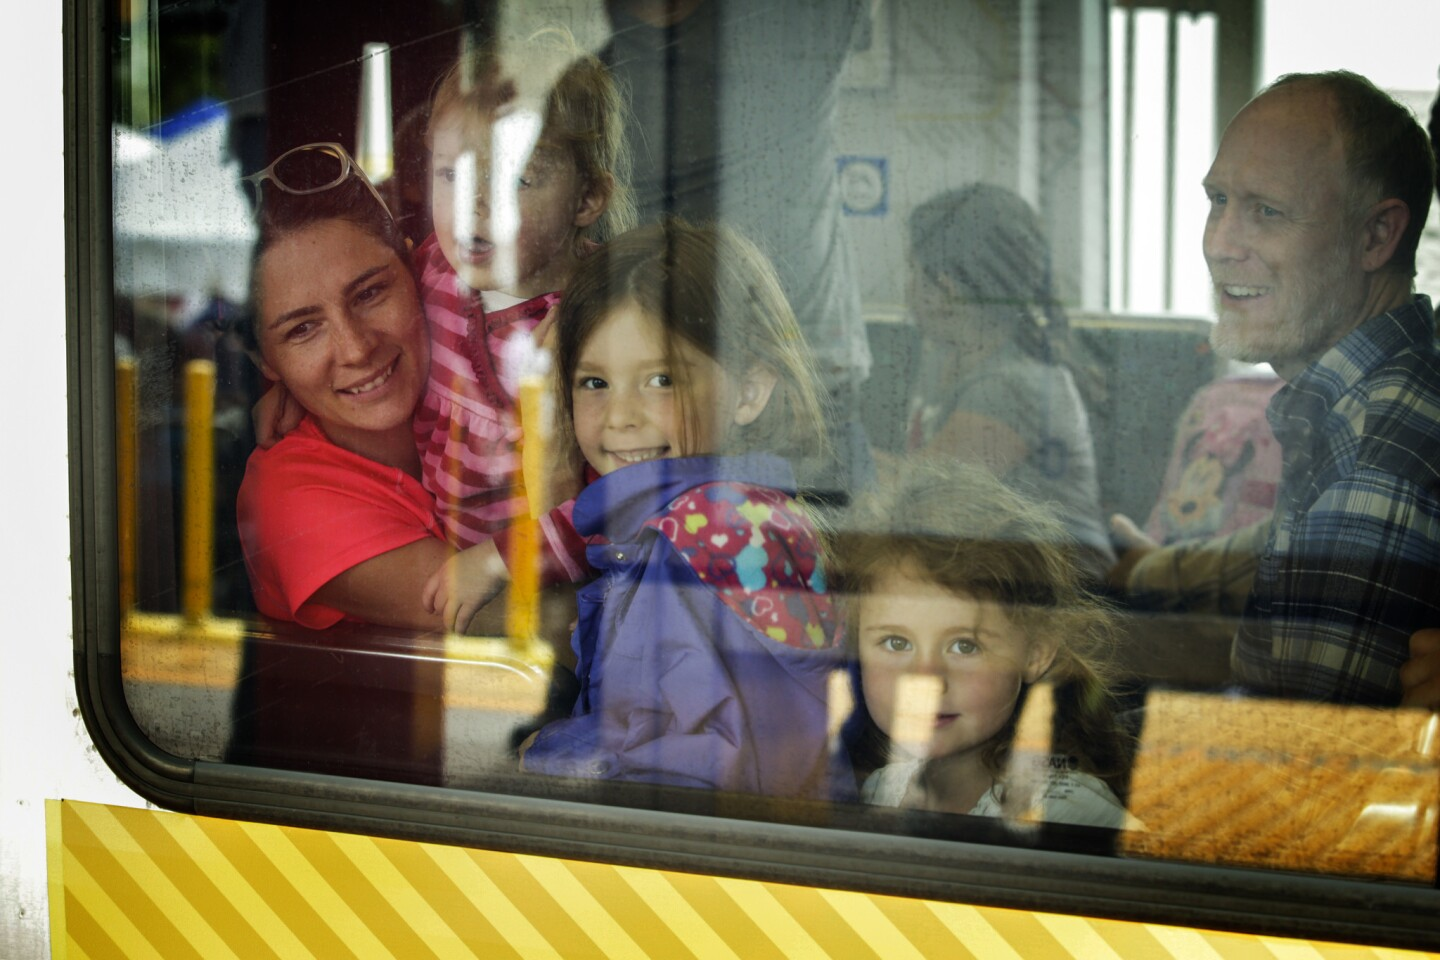 A family enjoys a ride on the Metro Gold Line train on the opening day of service on the $1-billion, 11.5-mile extension through the Foothills. The line will transform the lives and commutes of San Gabriel Valley residents, officials say.